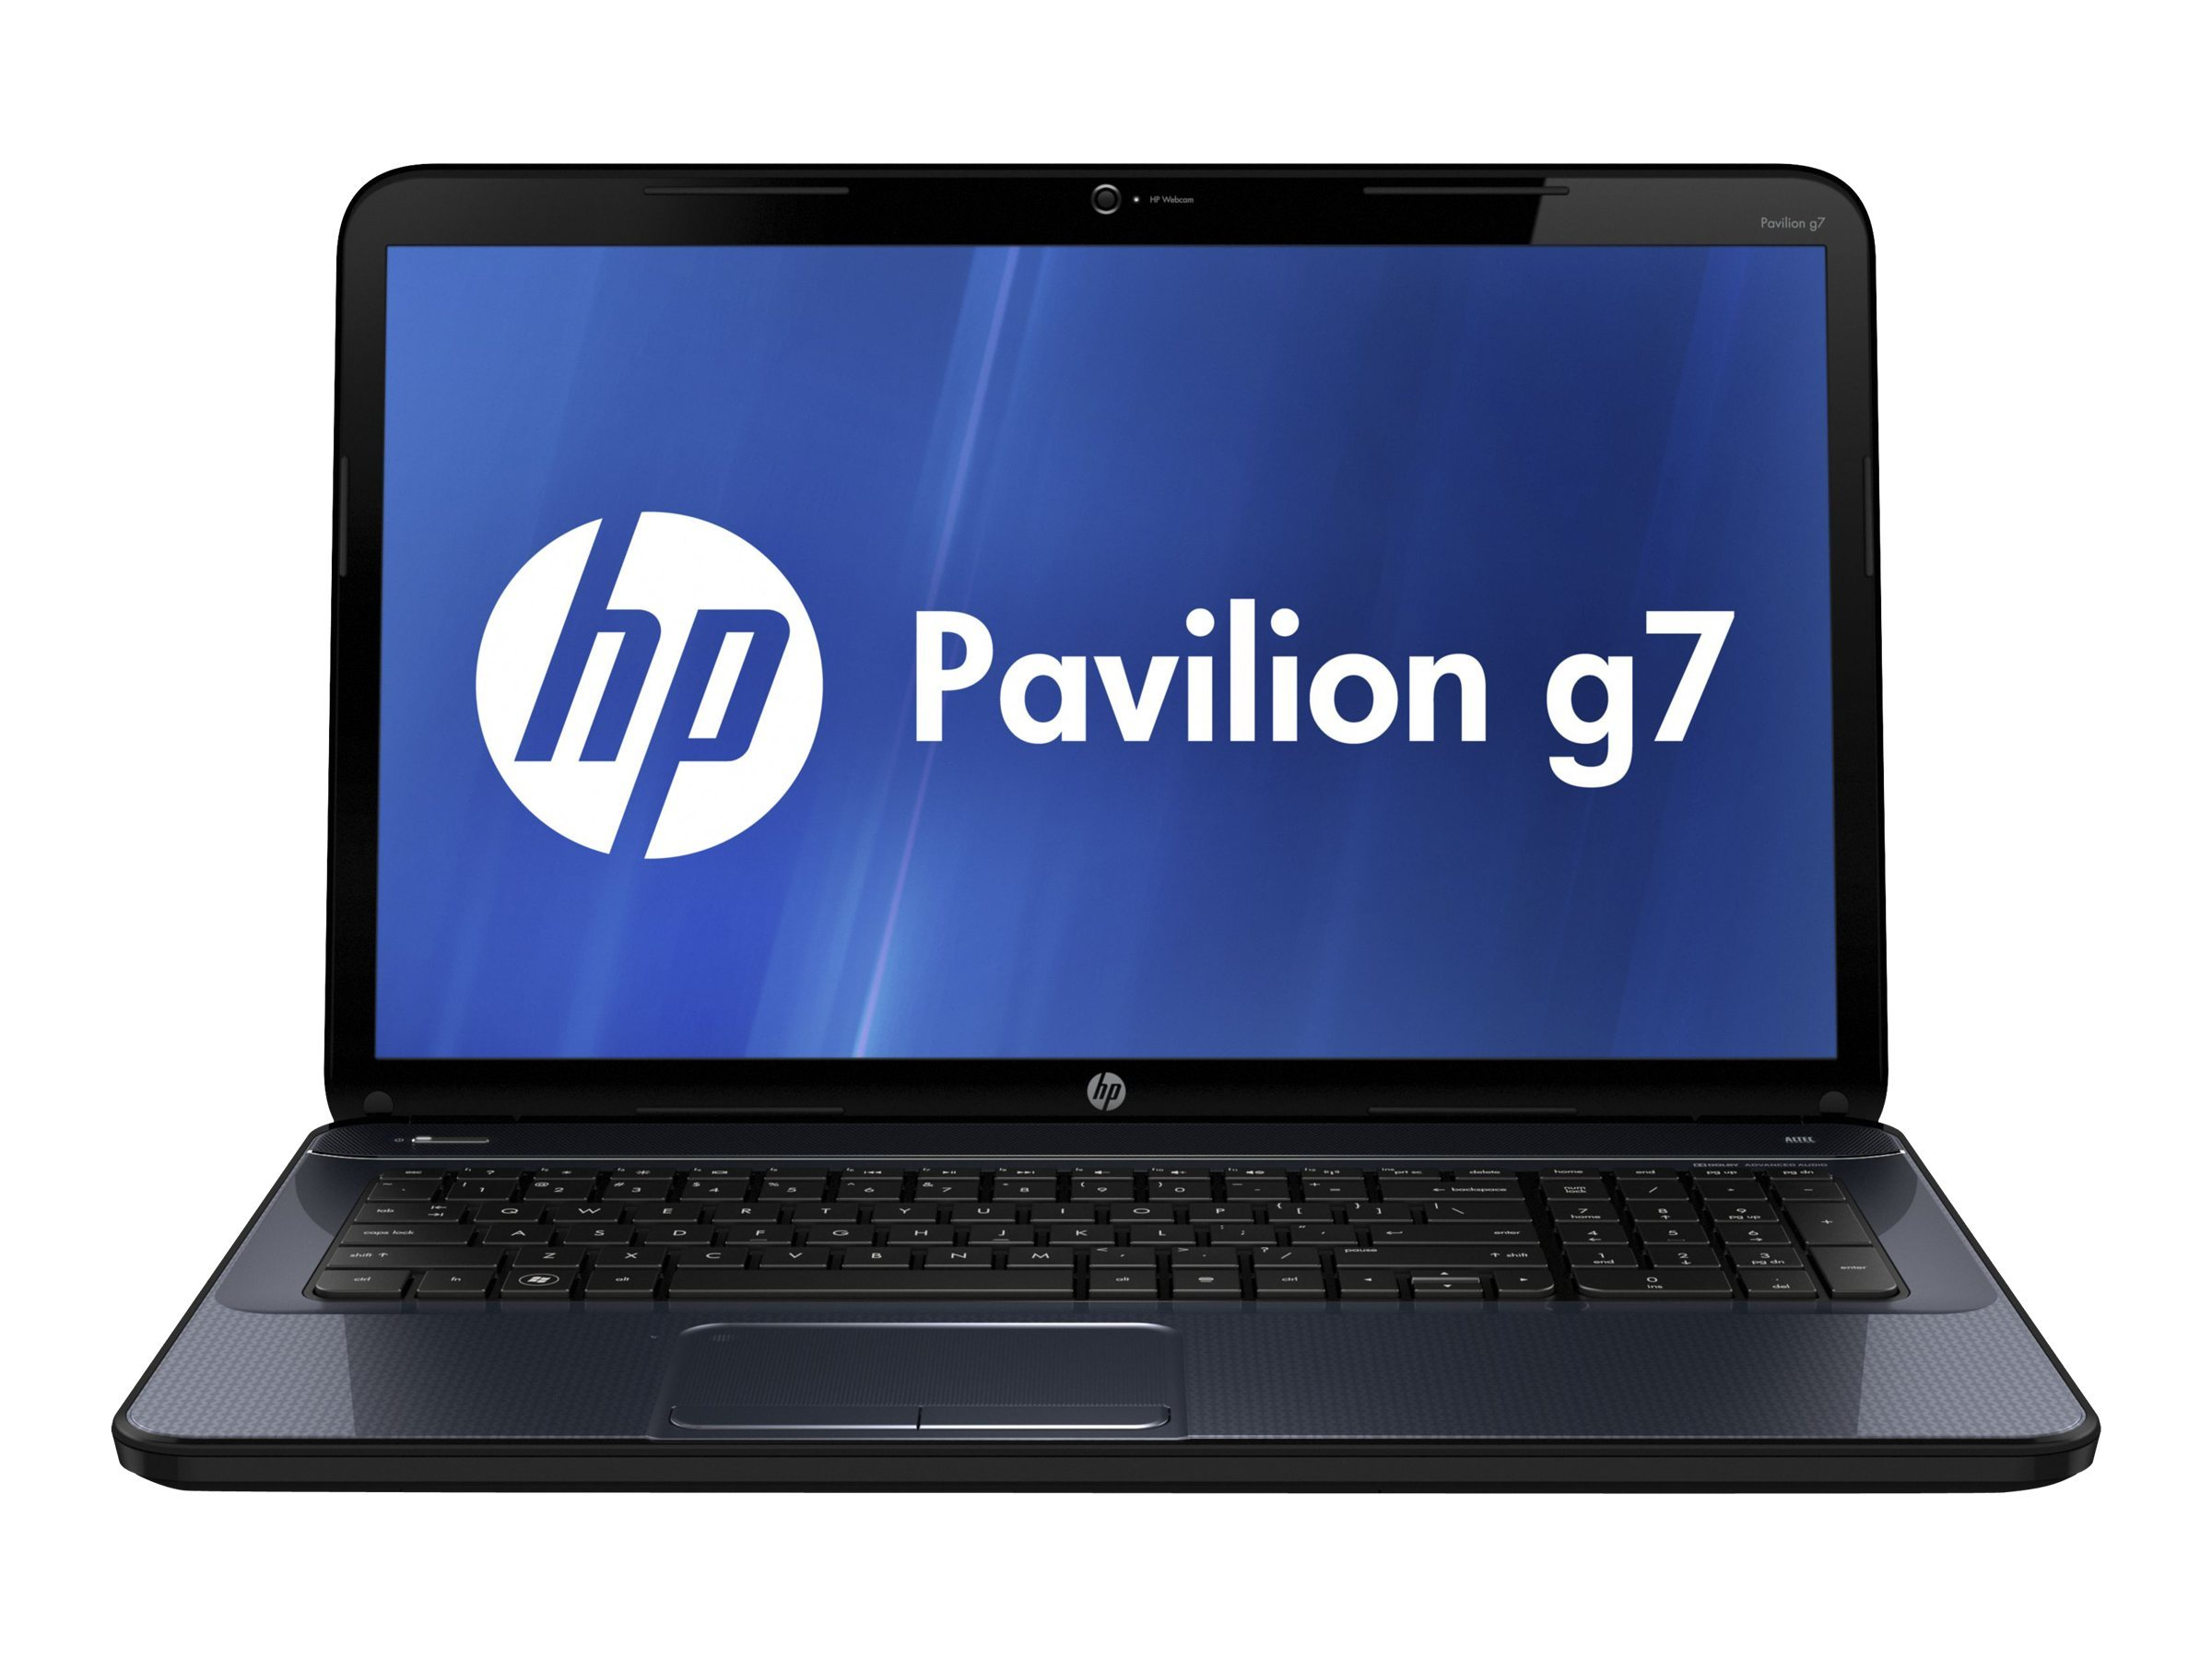 HP Pavilion G7-2111nr Notebook PC